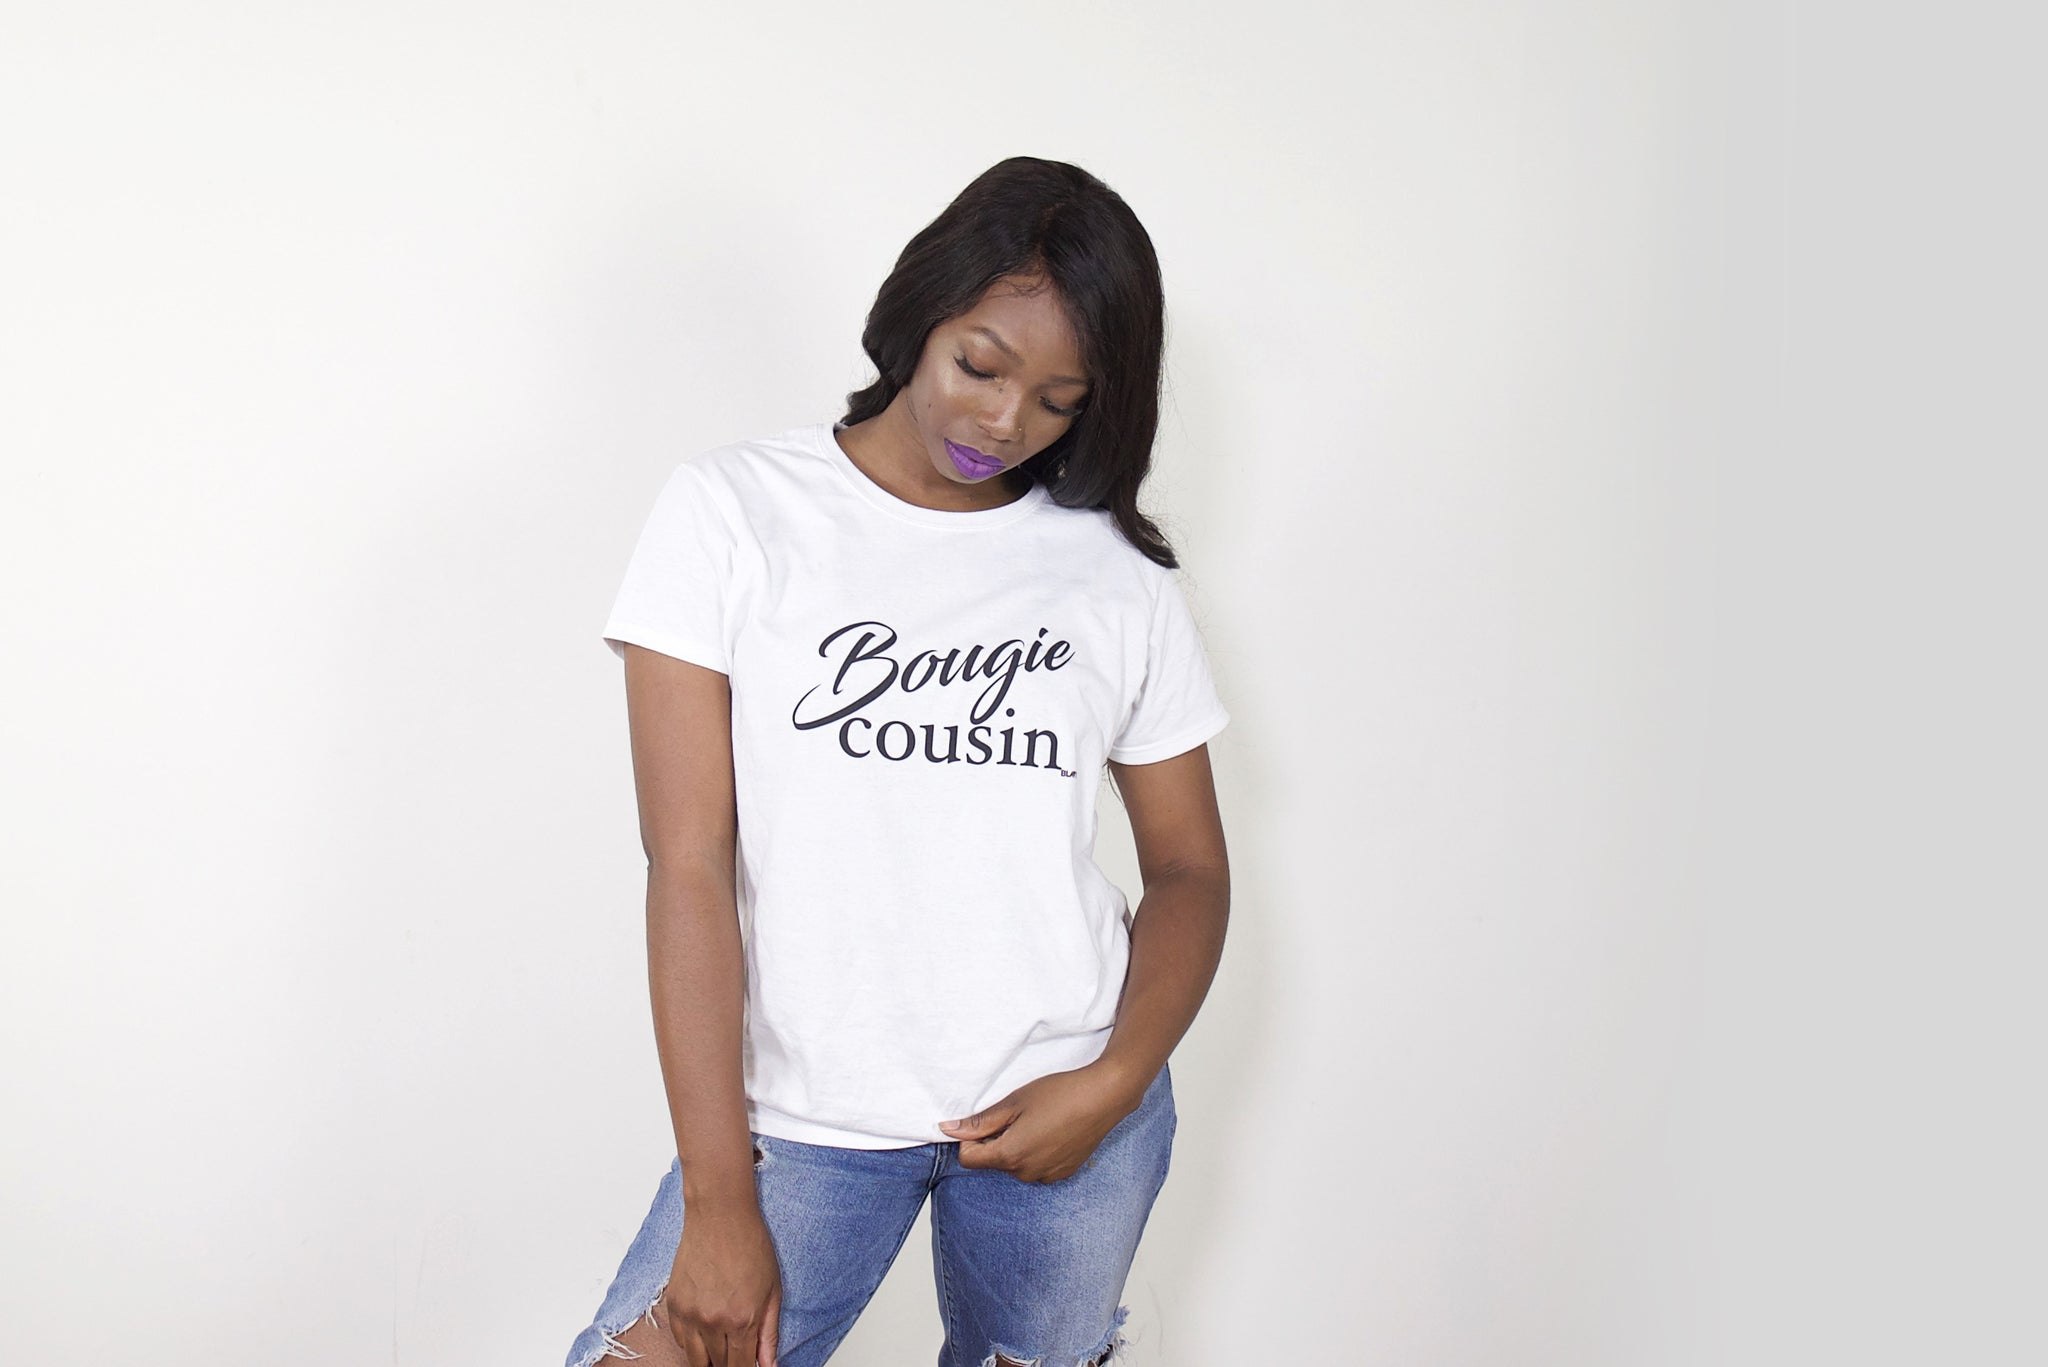 """Bougie Cousin"" Women's Short Sleeve T-Shirt"